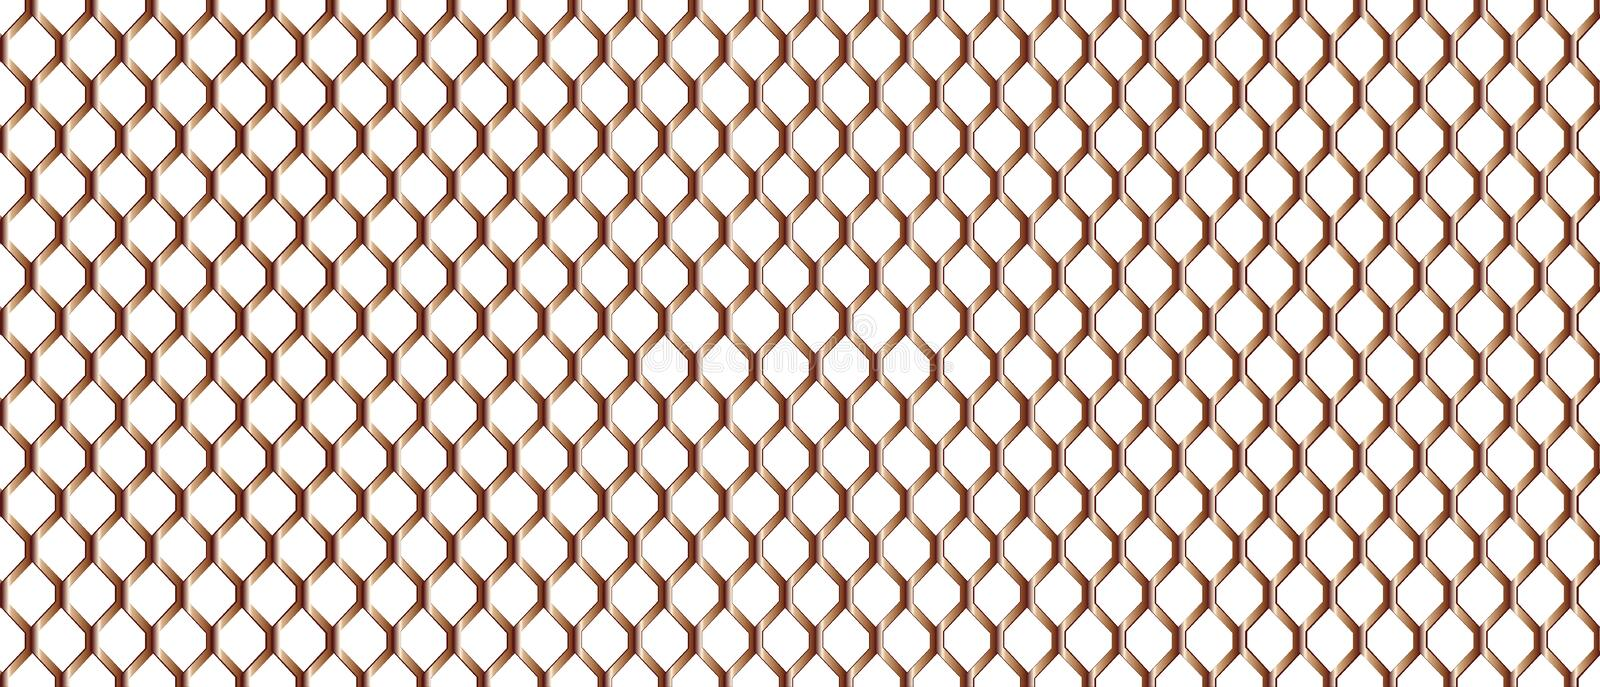 Chain Link Fence royalty free illustration